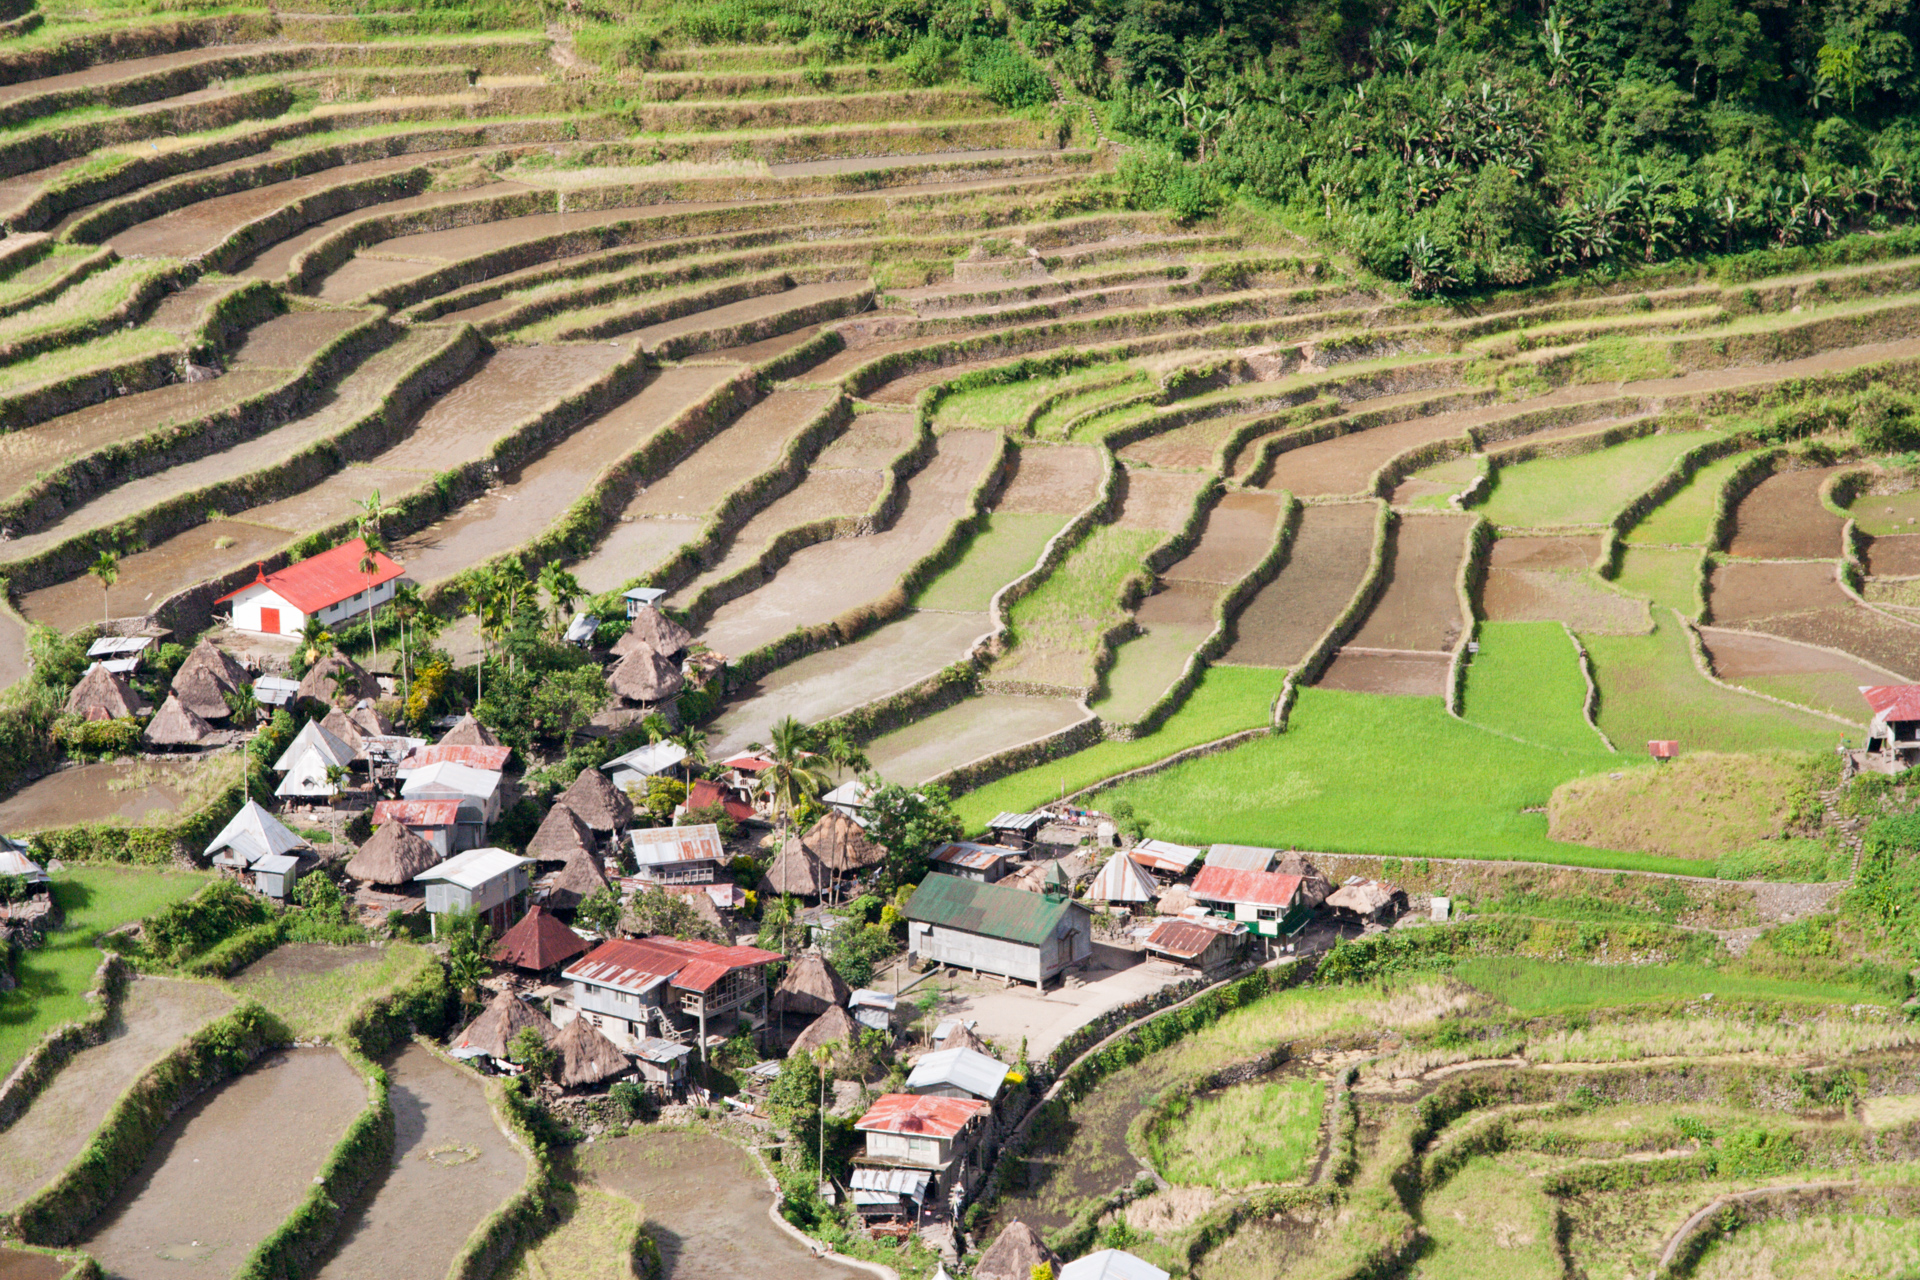 Batad Ifugao (Photo by Jasper Espejo)